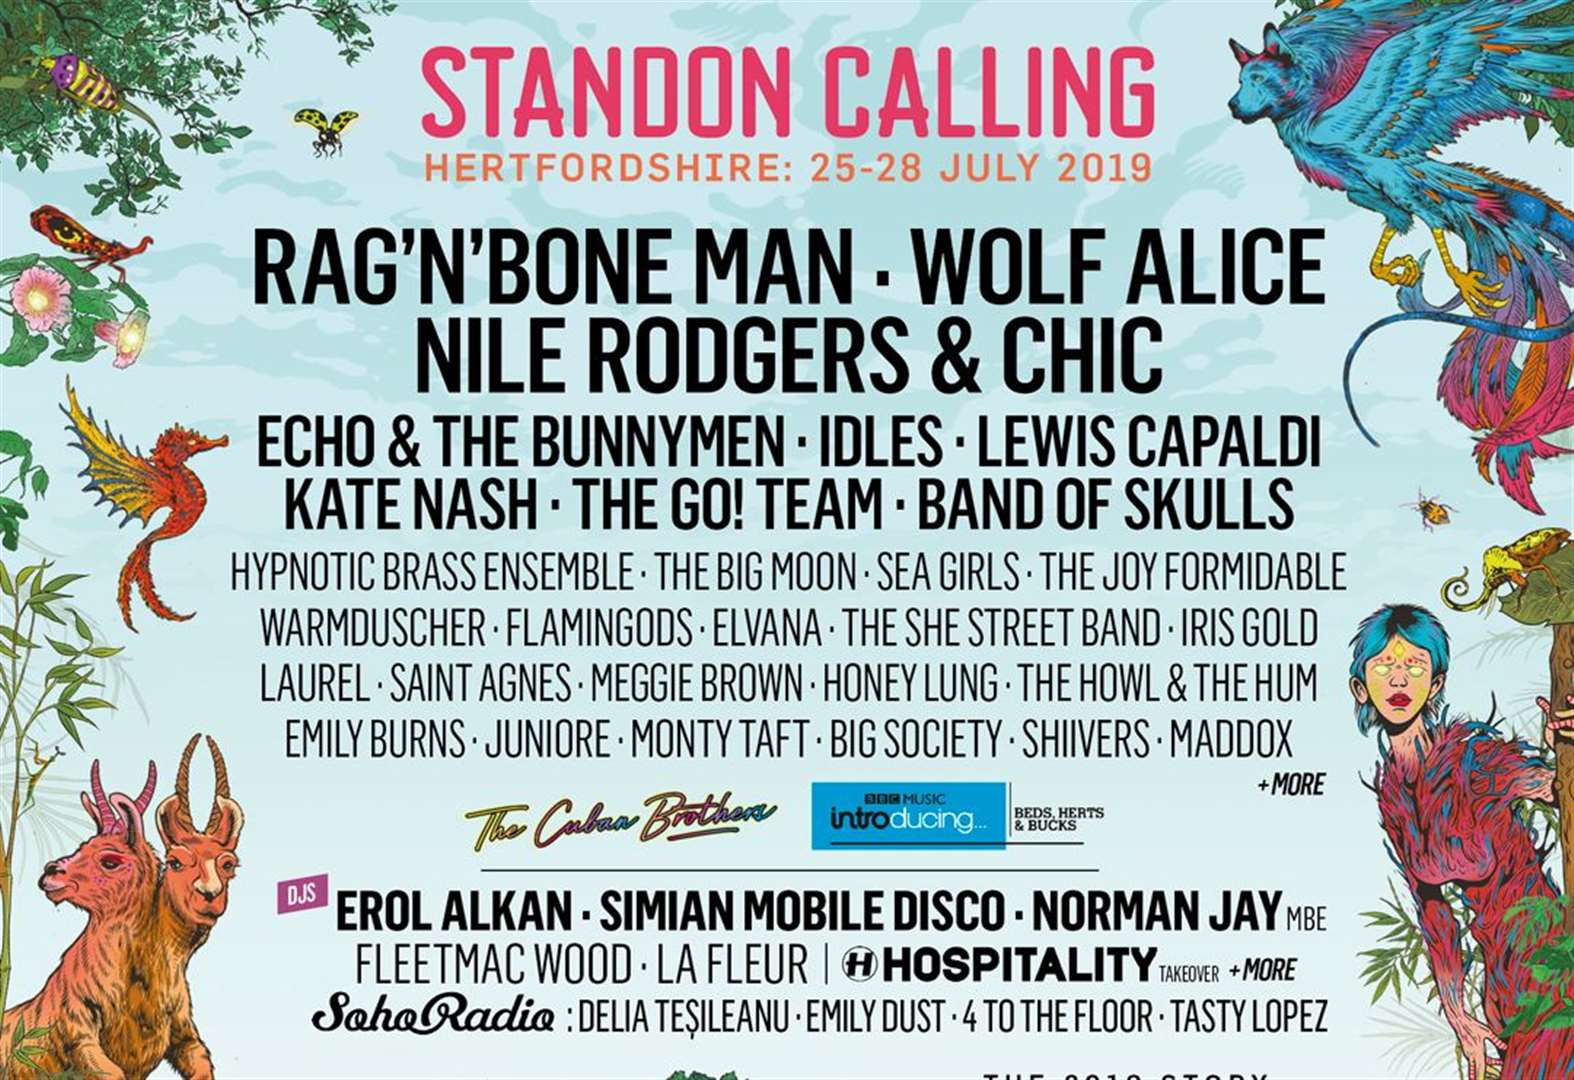 The Japanese House, Annabel Allum and Maven Grace turn up the heat for this summer's Standon Calling